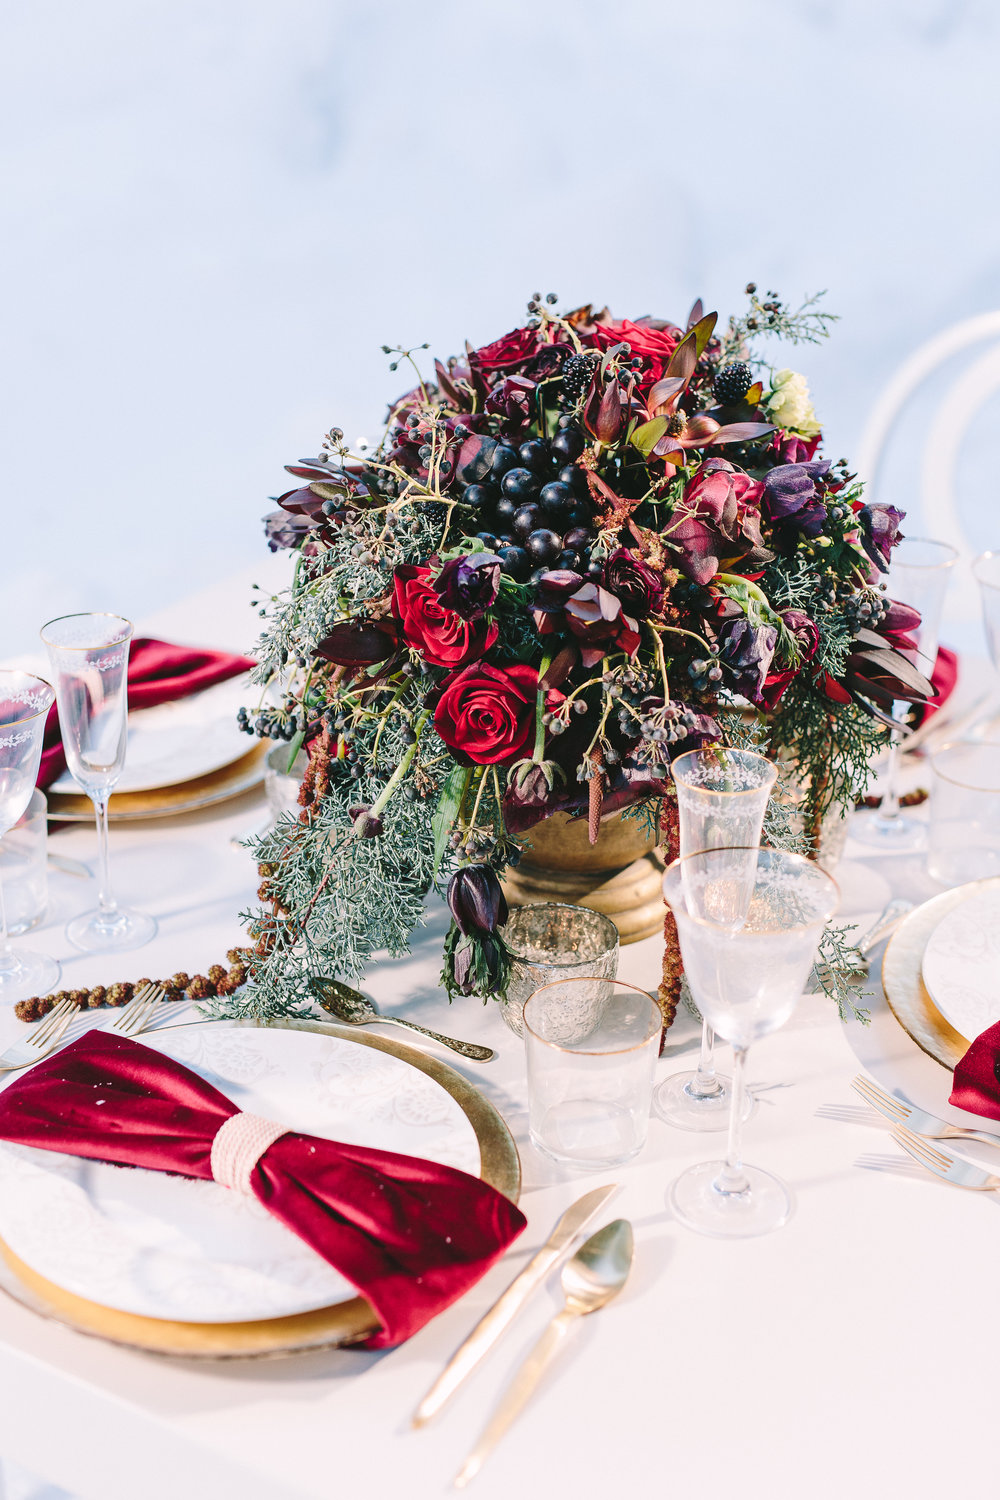 styled-shoot-winter-elatos-resort-greece-destination-wedding-table-luxury-chic-burgundy-white-gold-dinner-floral-design